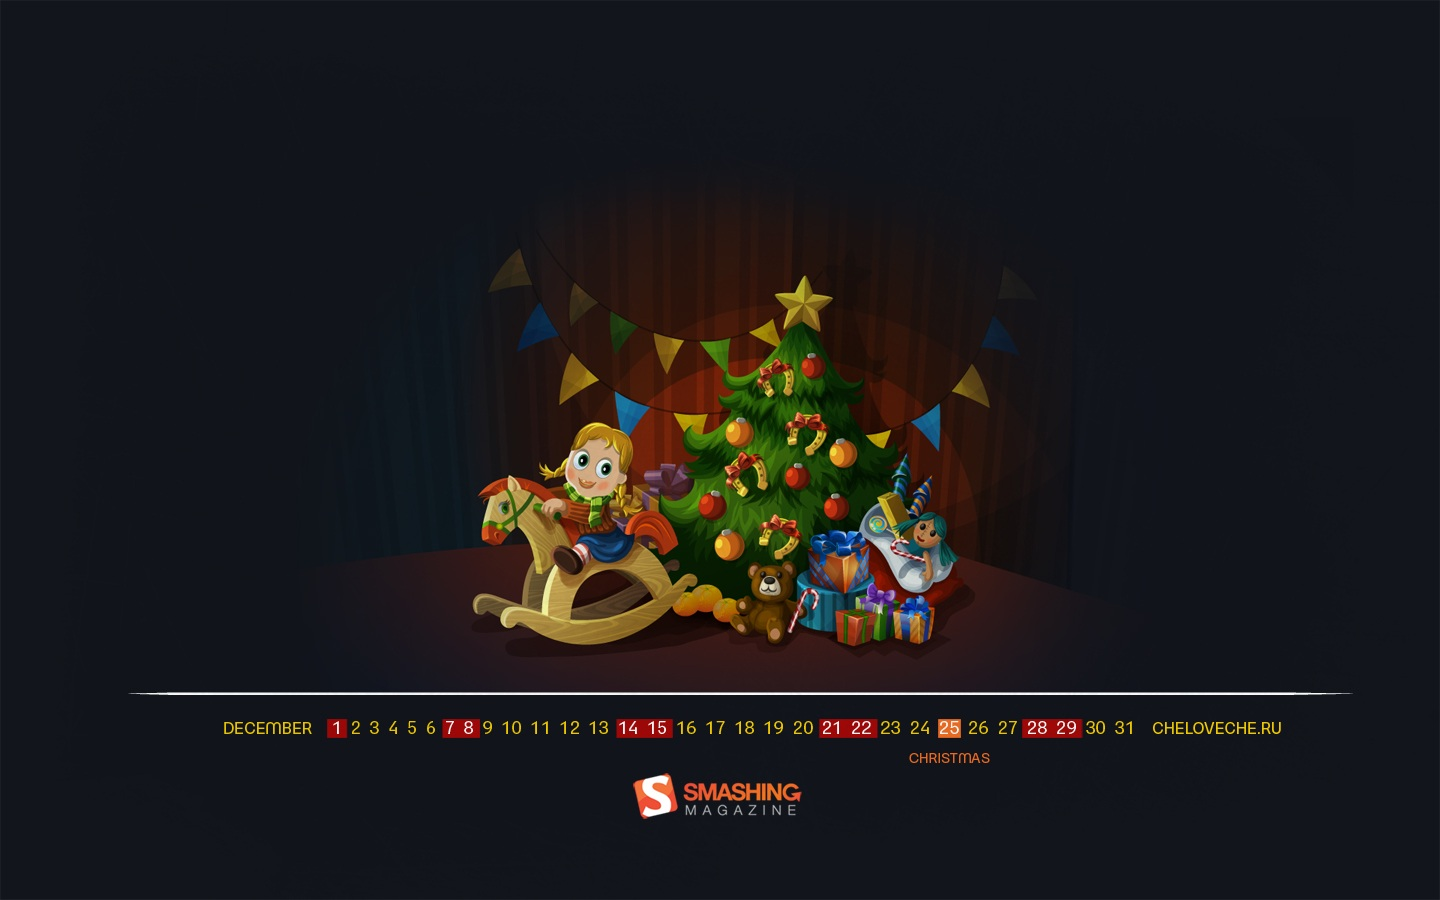 Month Calendar Wallpaper Christmas Edition 49704